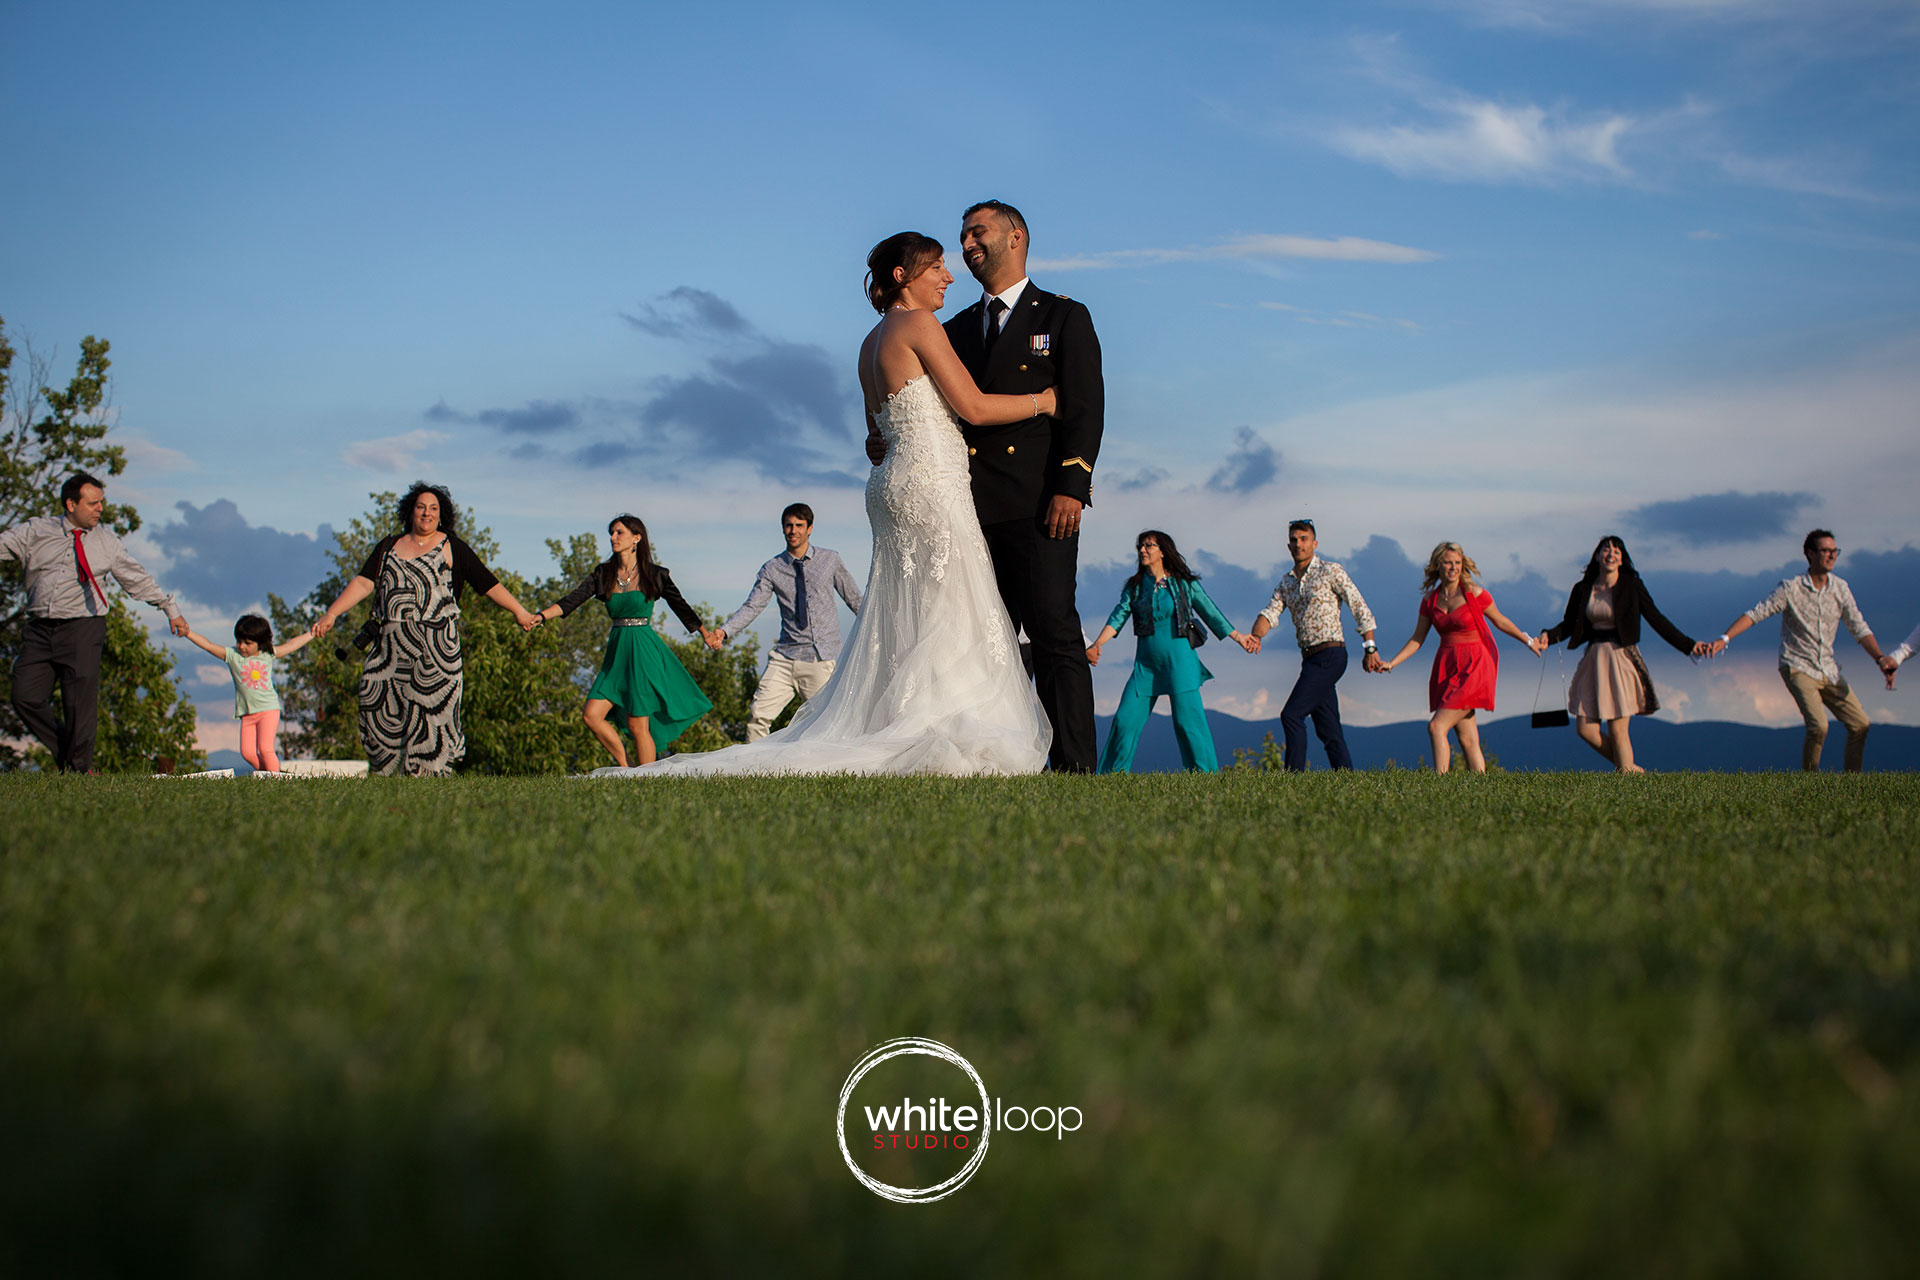 The smily couple appears to be surrounded by the guests who are dancing in circle while the sky is intensely blue and the grass perfectly cut and green.